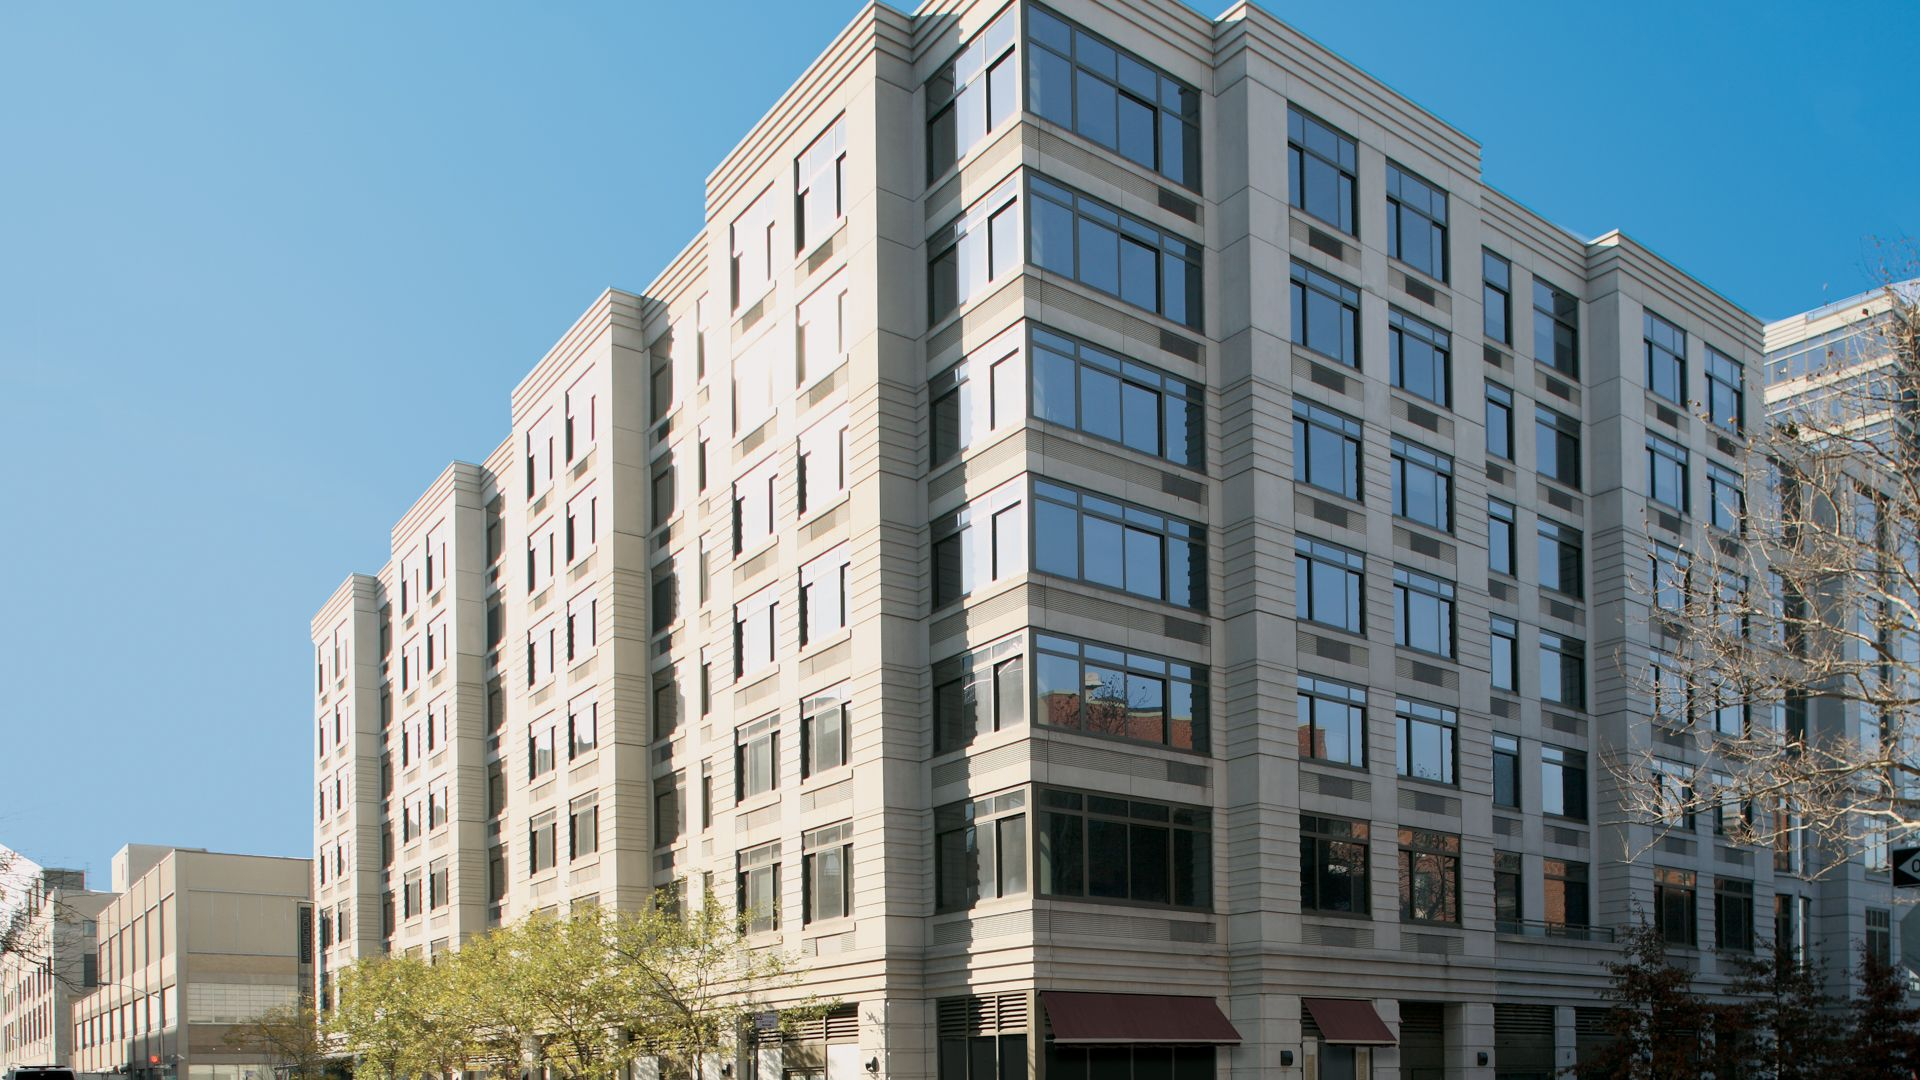 600 washington apartments in west village 600 washington street